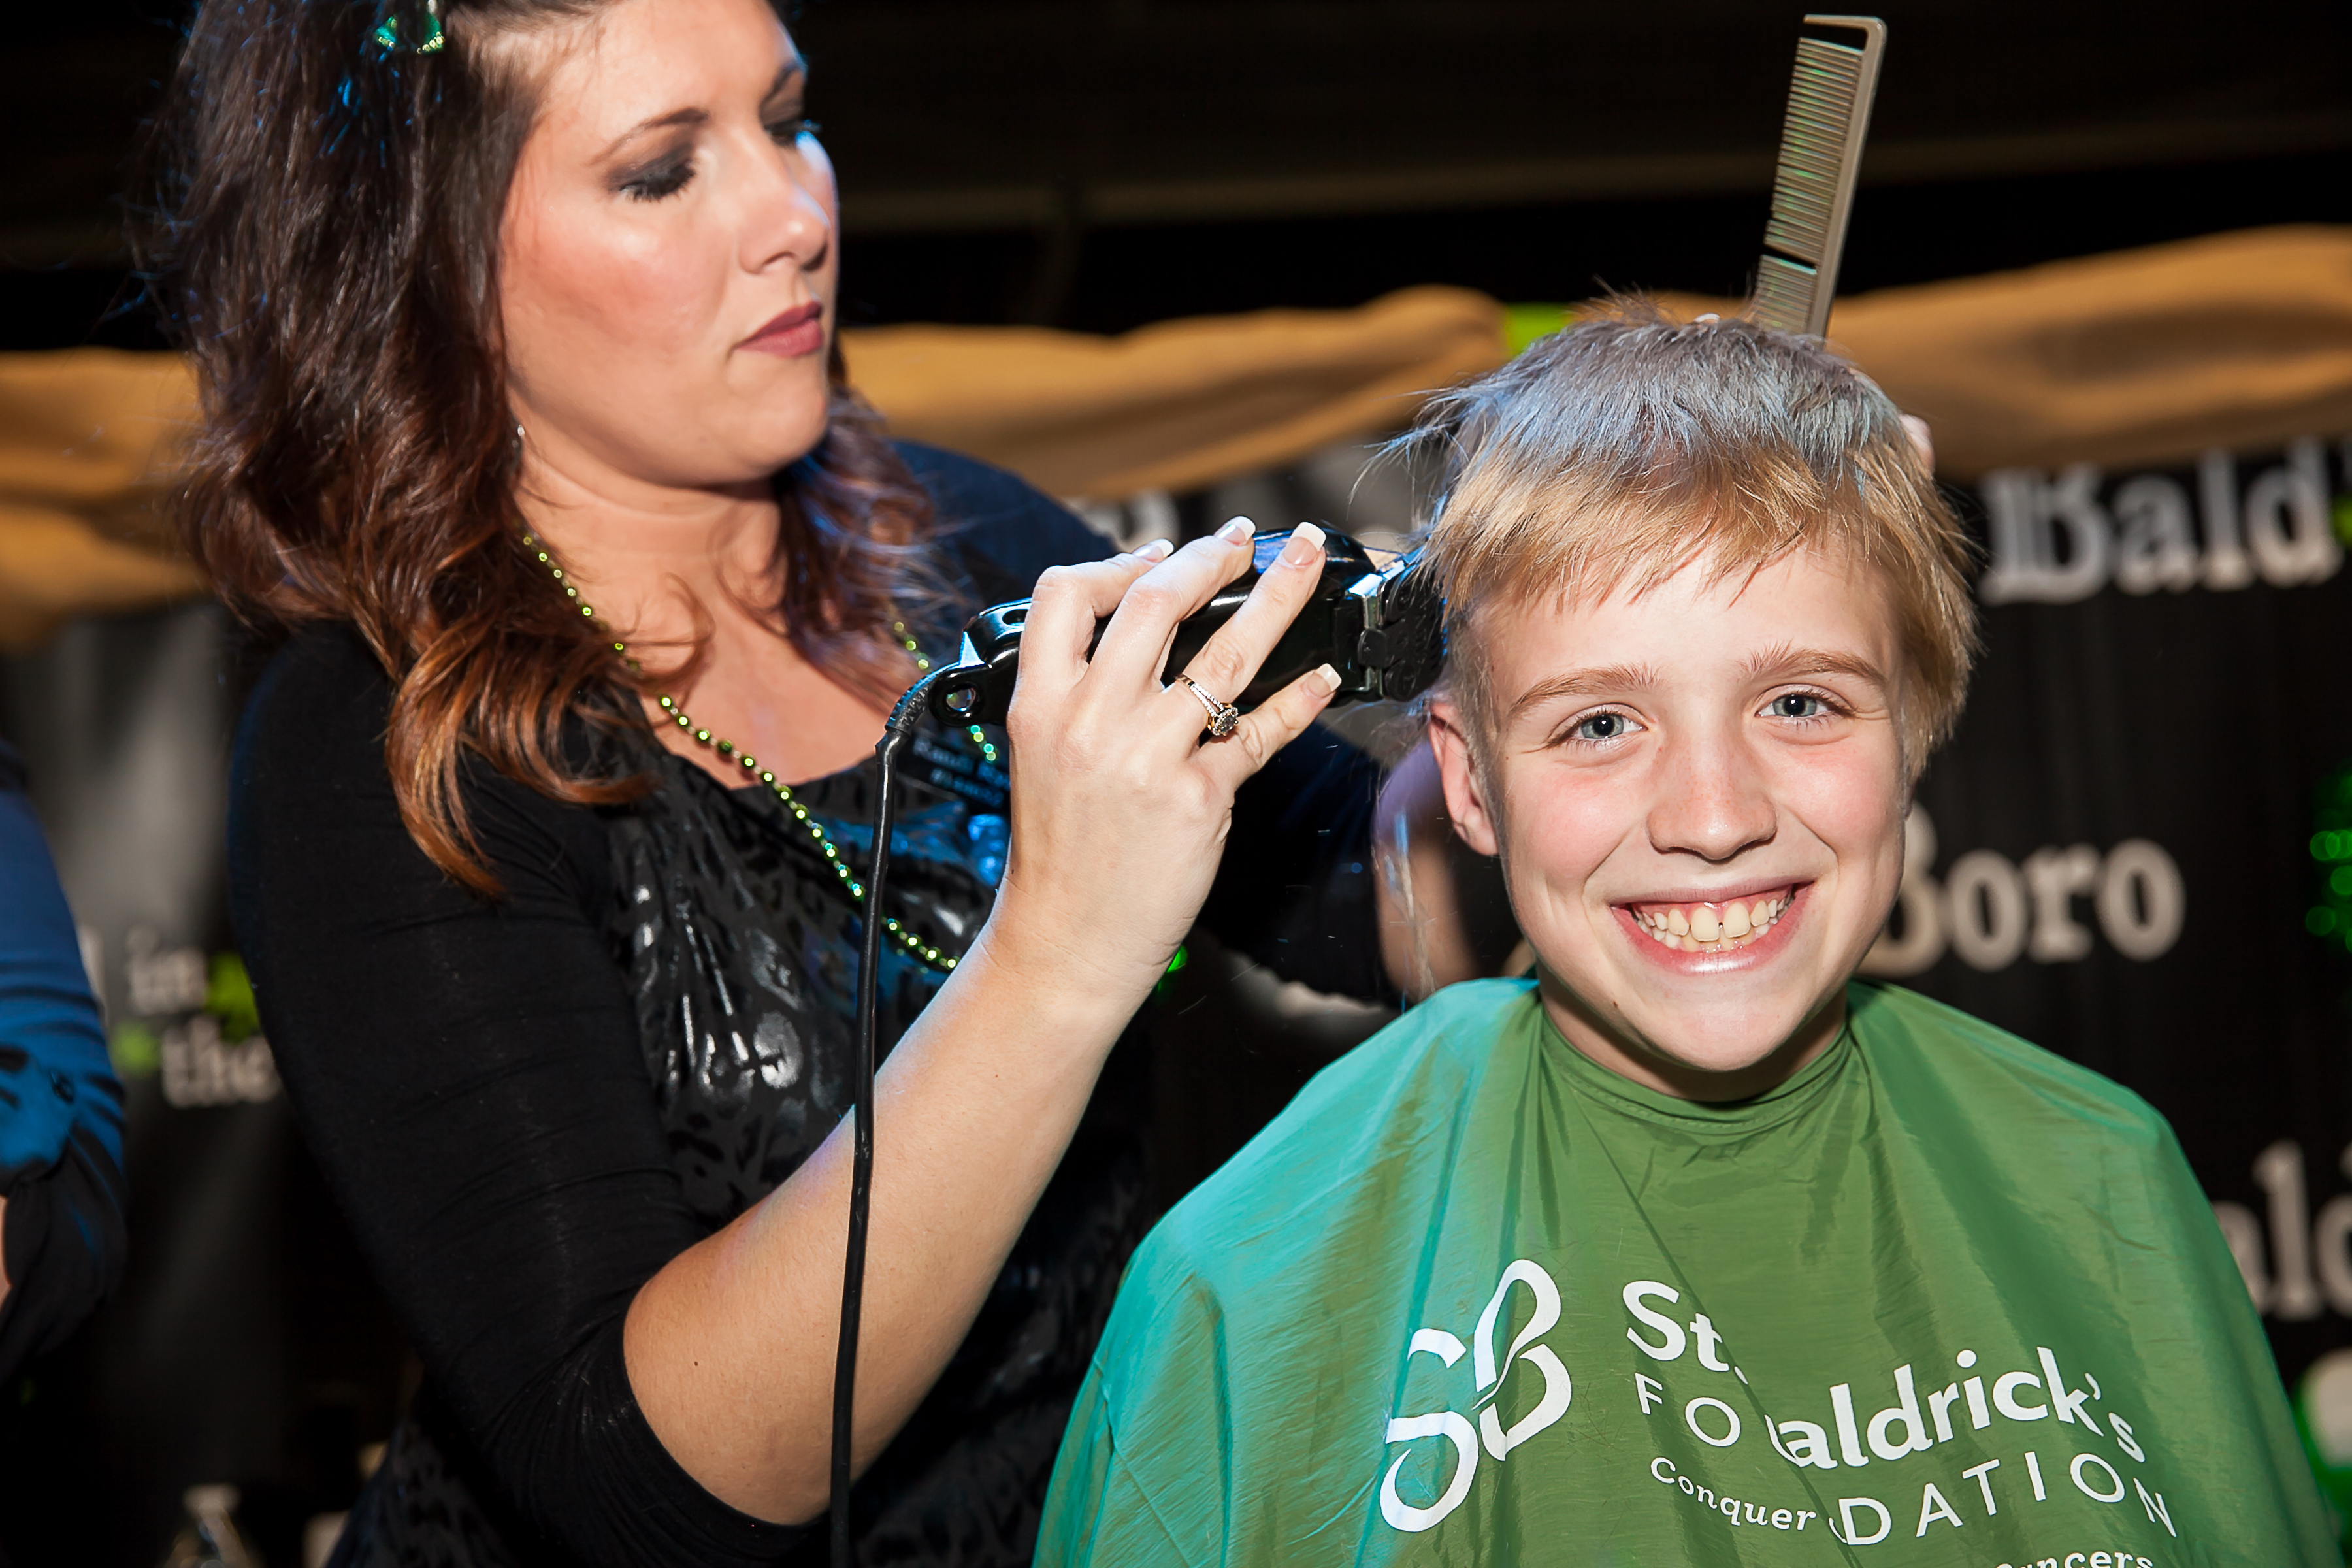 8th annual Bald in the Boro is set to take place on Friday, March 16th